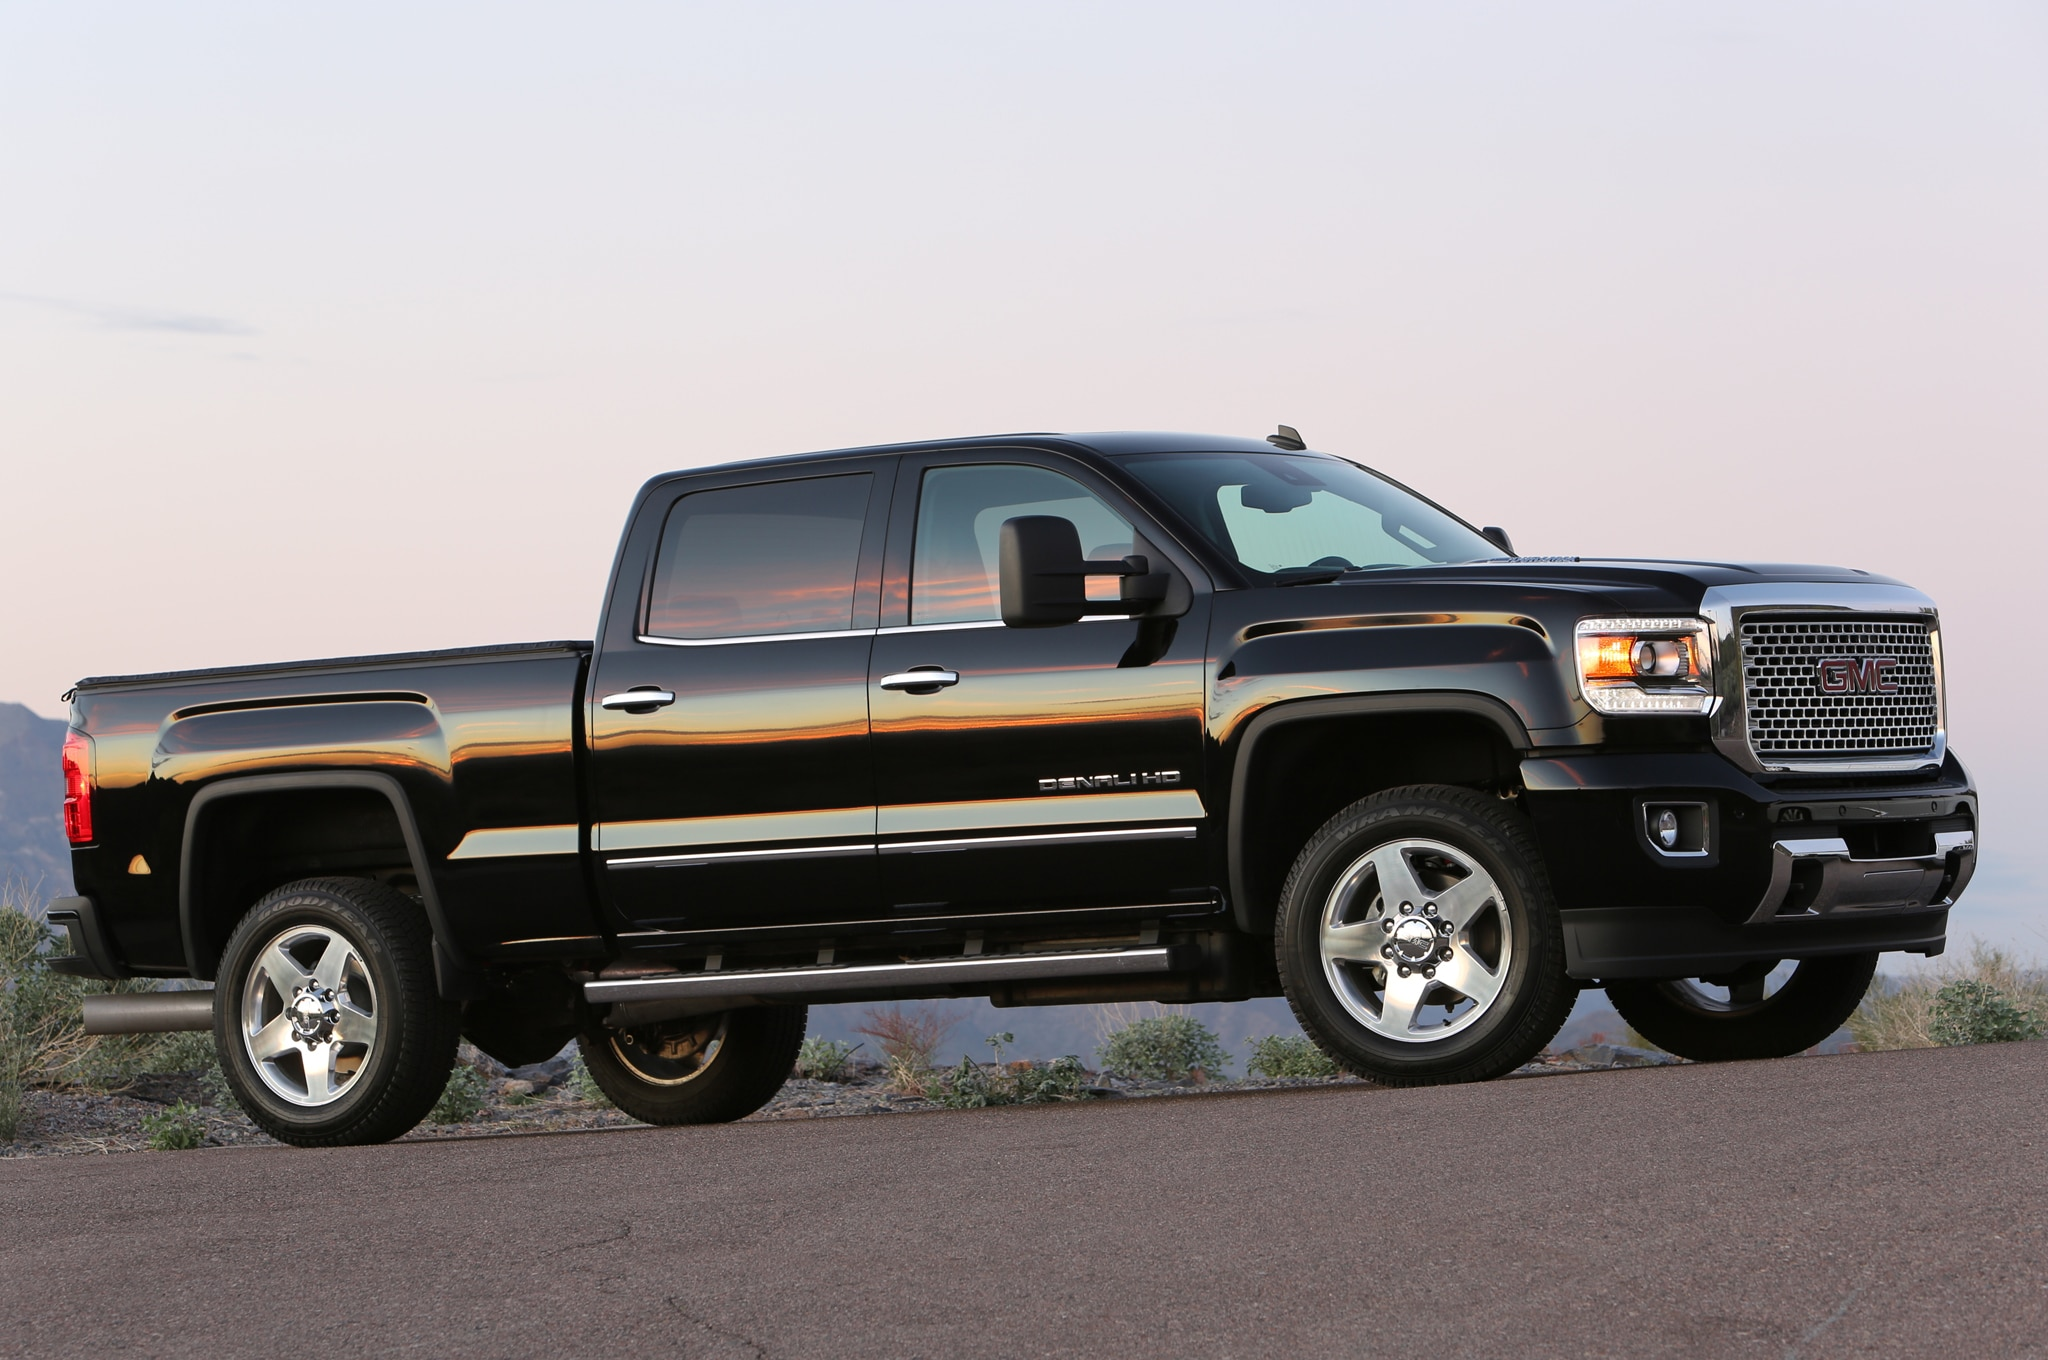 2015 GMC Sierra 2500HD Denali front three quarters view